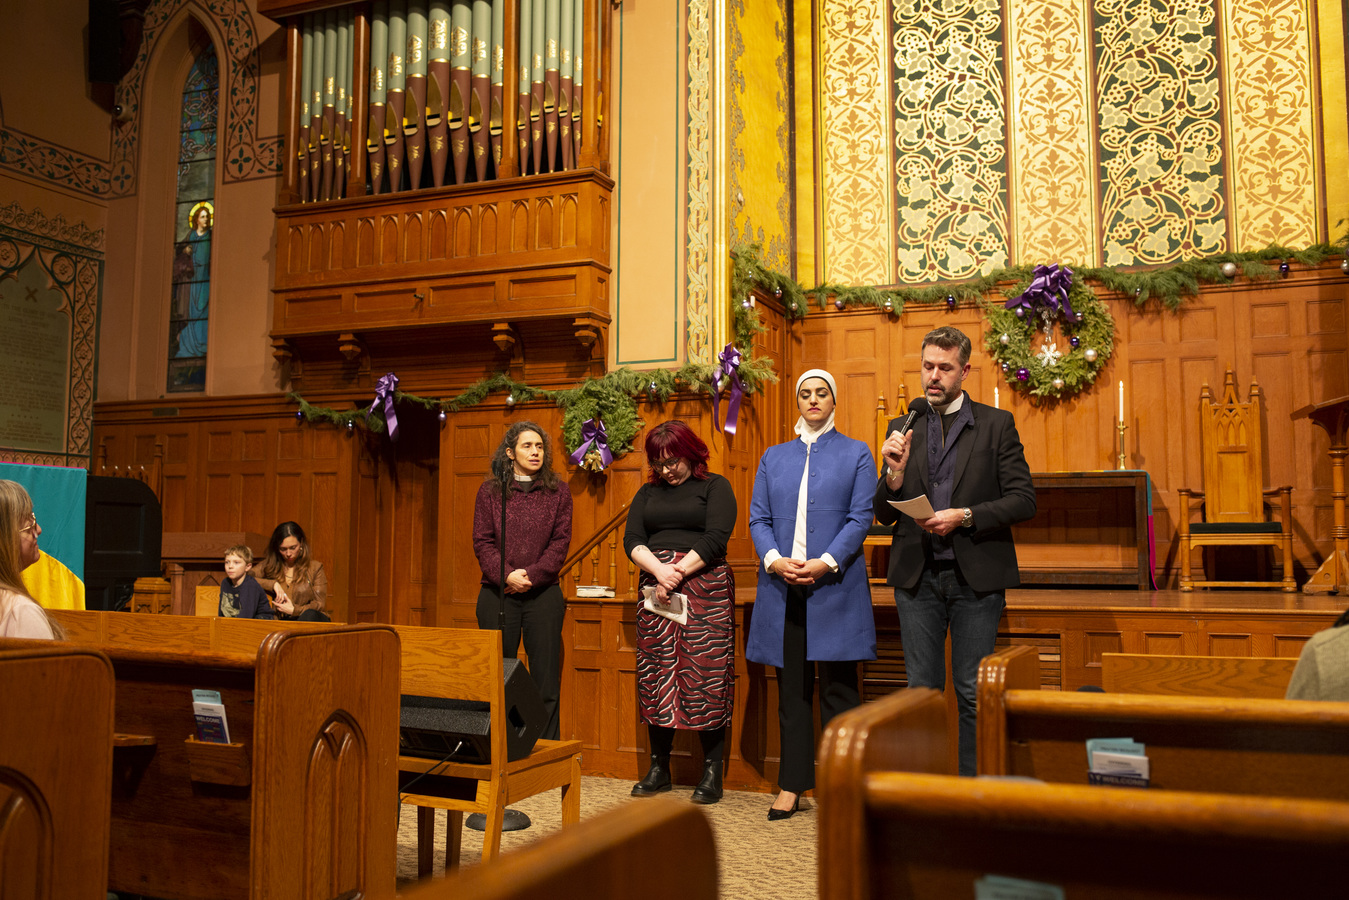 Say No To War Interfaith Peace Vigil Middle Collegiate Church 1/7/20 Interfaith Prayers for Peace Rev. Chole Breyer, Madge Dietrich, Tahanie Aboushi & Will Critzman, Sr. Pastor West End Colliegiate Church